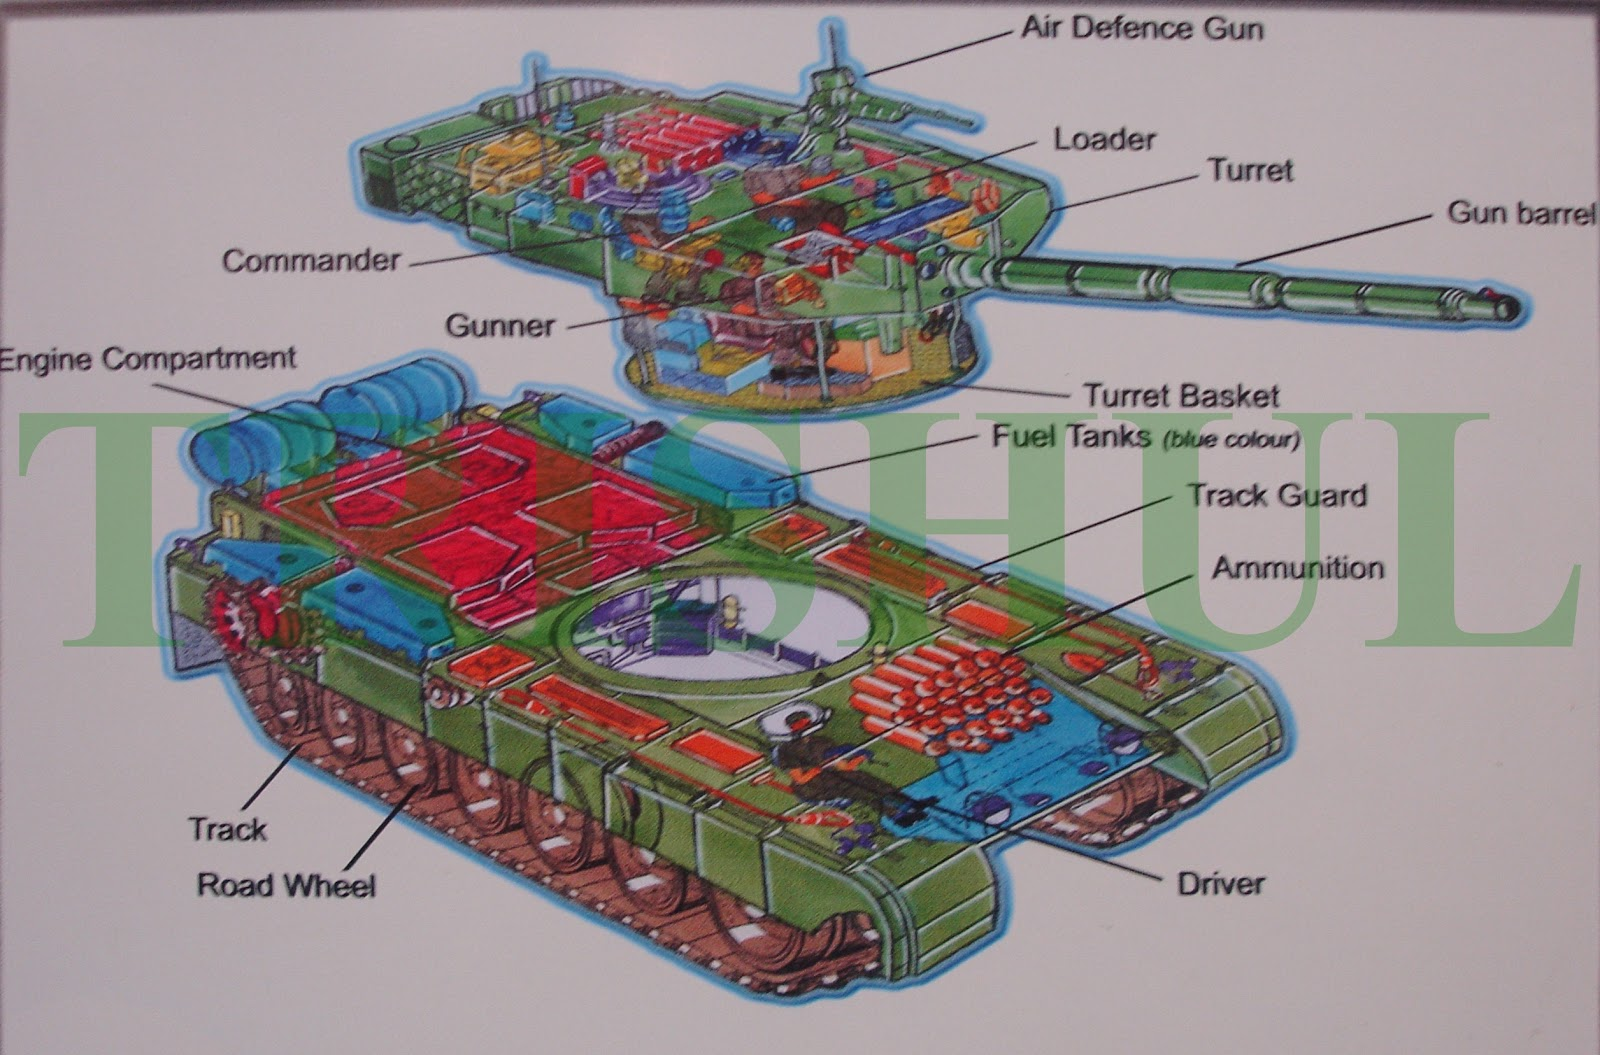 Trishul Snapshots Of Drdo Exhibits At Iscs Pride India Expo Merkava Tank Schematic Shown Below Is The Latest Data On Emb 145i Aew Cs Platform And Its Related Ground Based Support Infrastructure